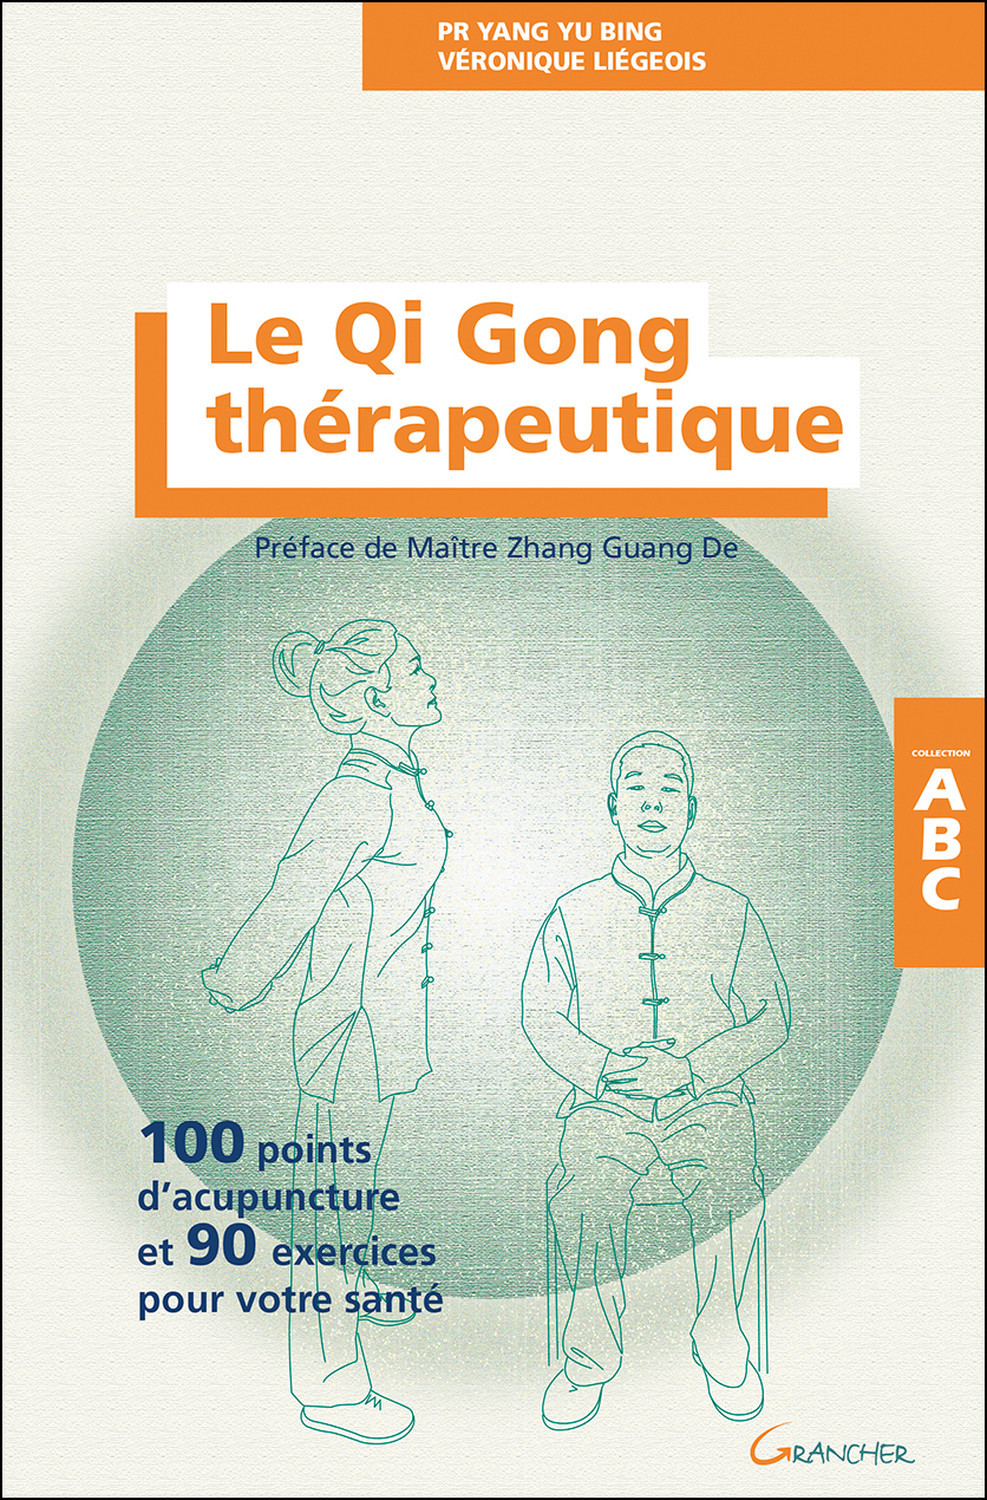 LE QI GONG THERAPEUTIQUE - 100 POINTS D'ACUPUNCTURE ET 90 EXERCICES POUR VOTRE SANTE - ABC